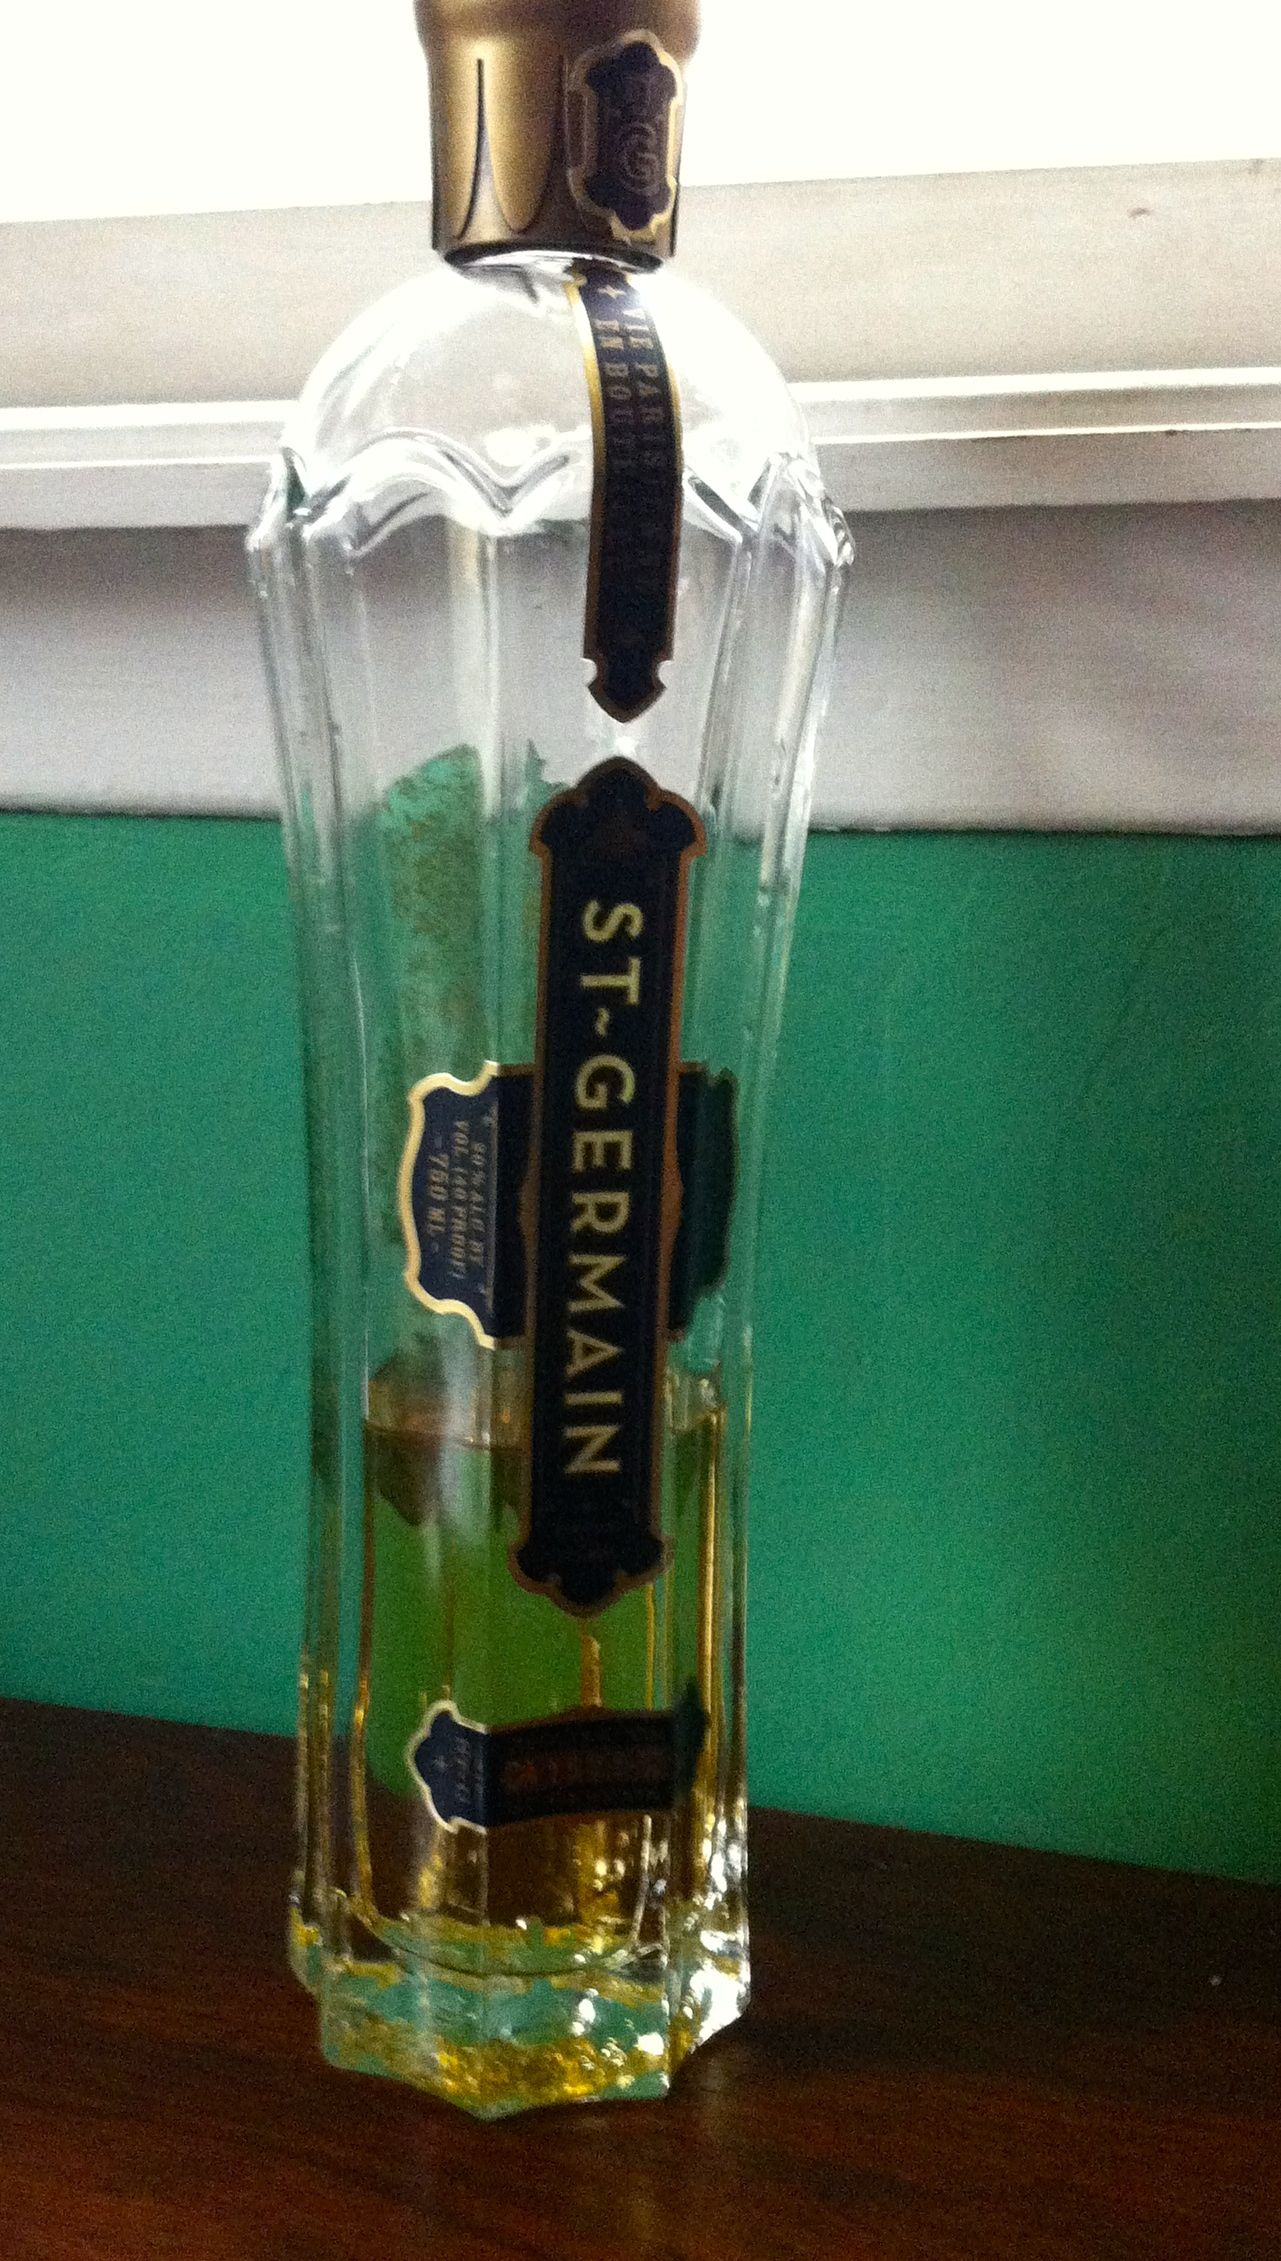 750 ml Bottle of St-Germain